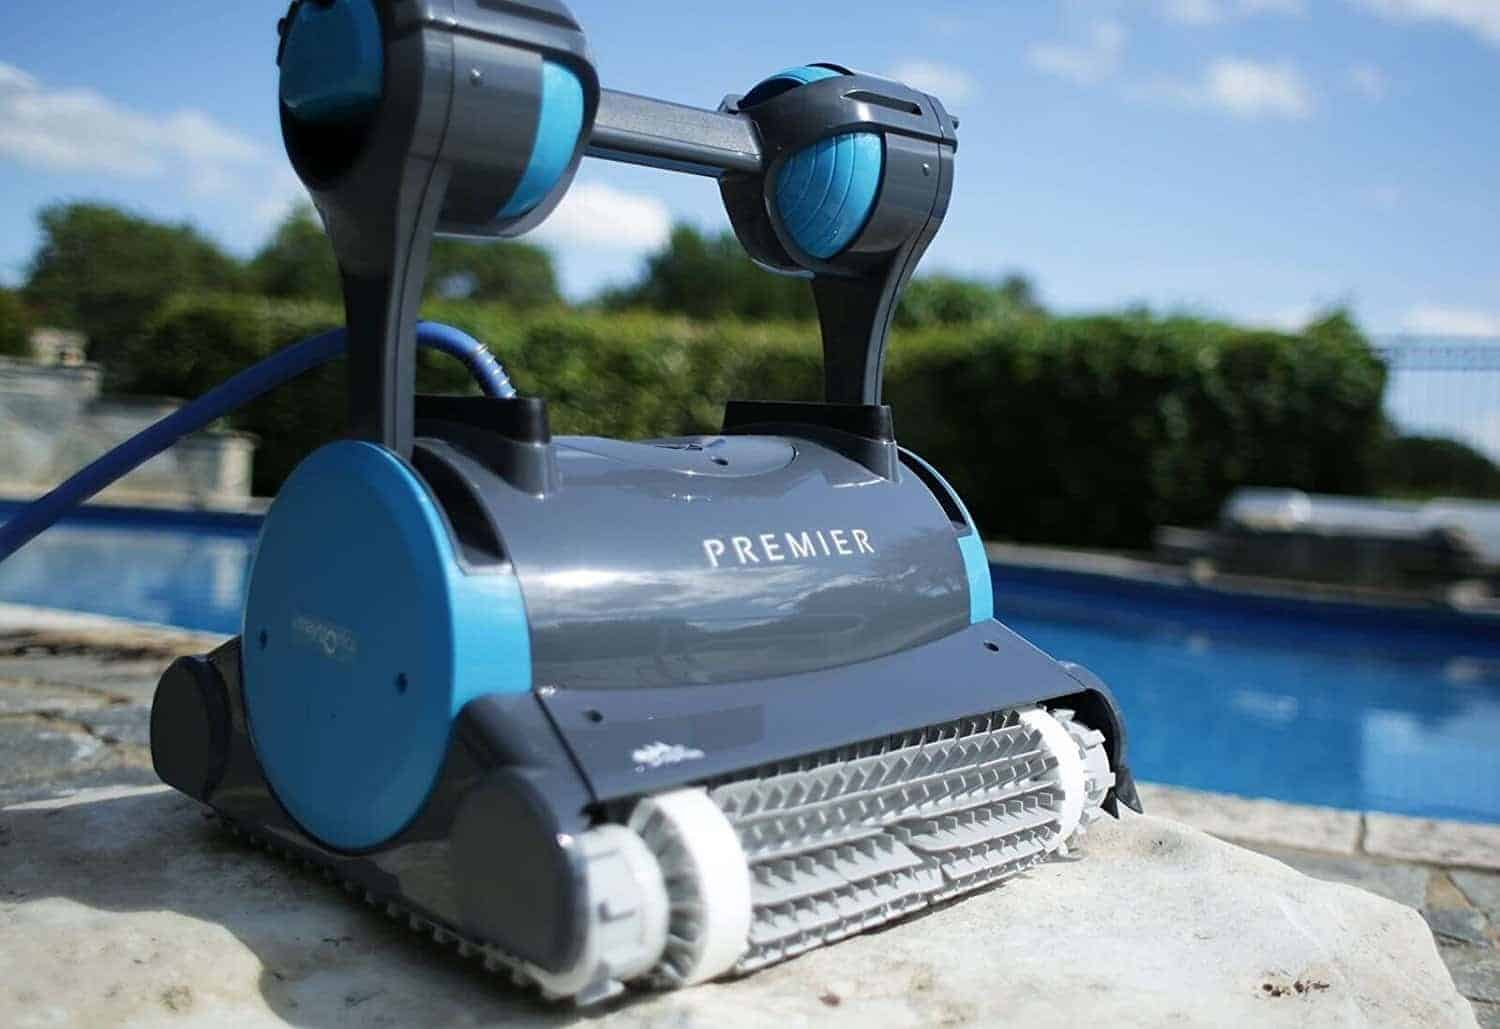 Premier Dolphin Premier Robotic In-Ground Pool Cleaner